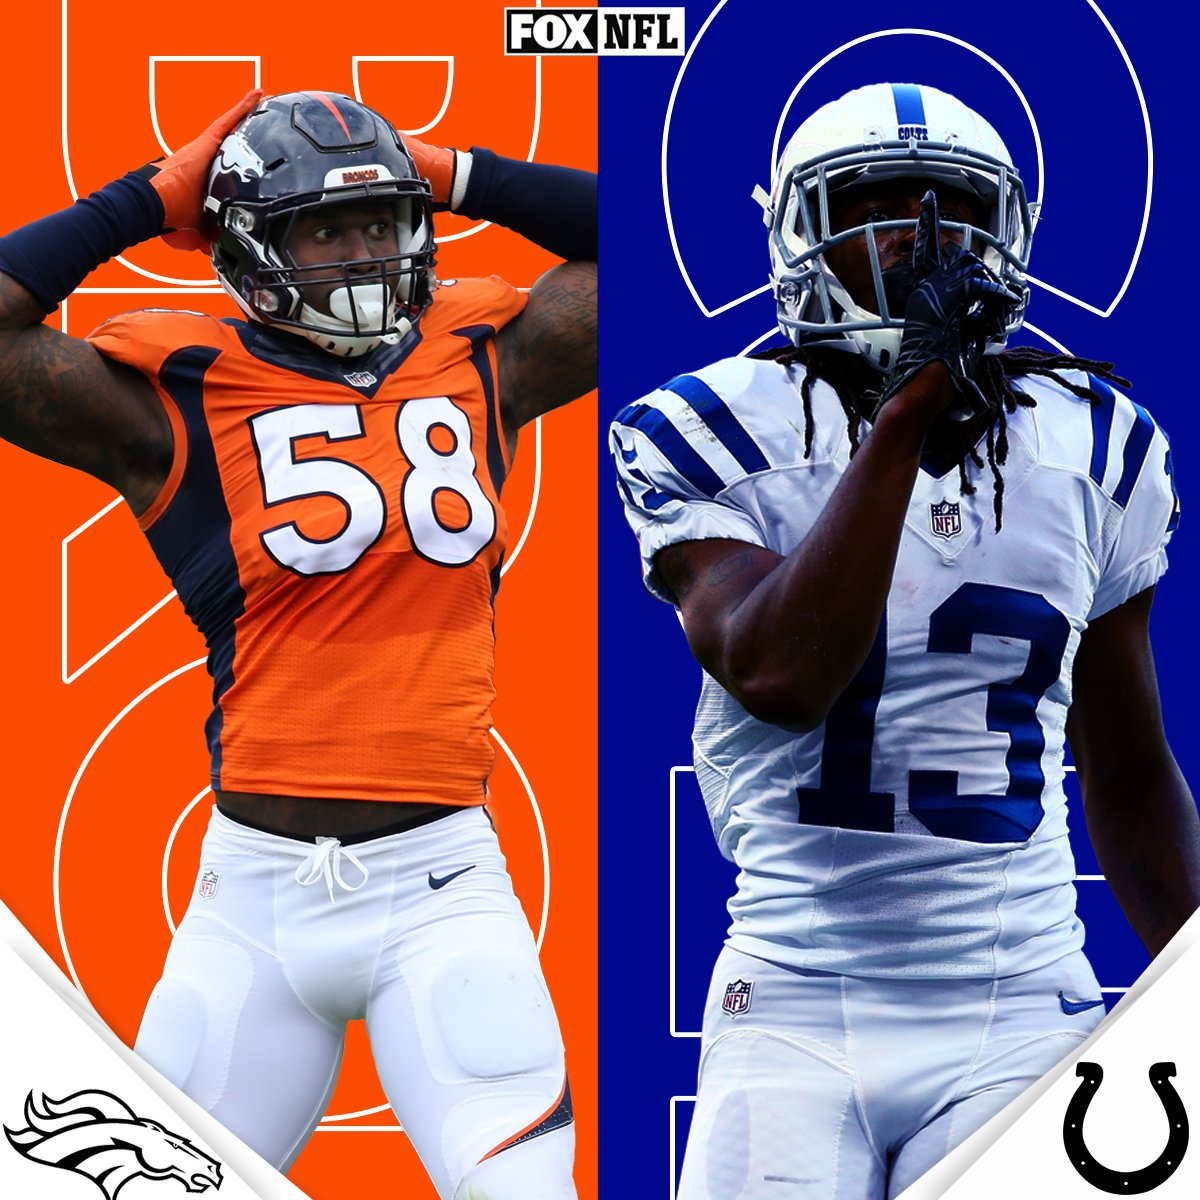 Thursday Night Football kicks off with an AFC battle. Who ya got? - @Colts  - @Broncos